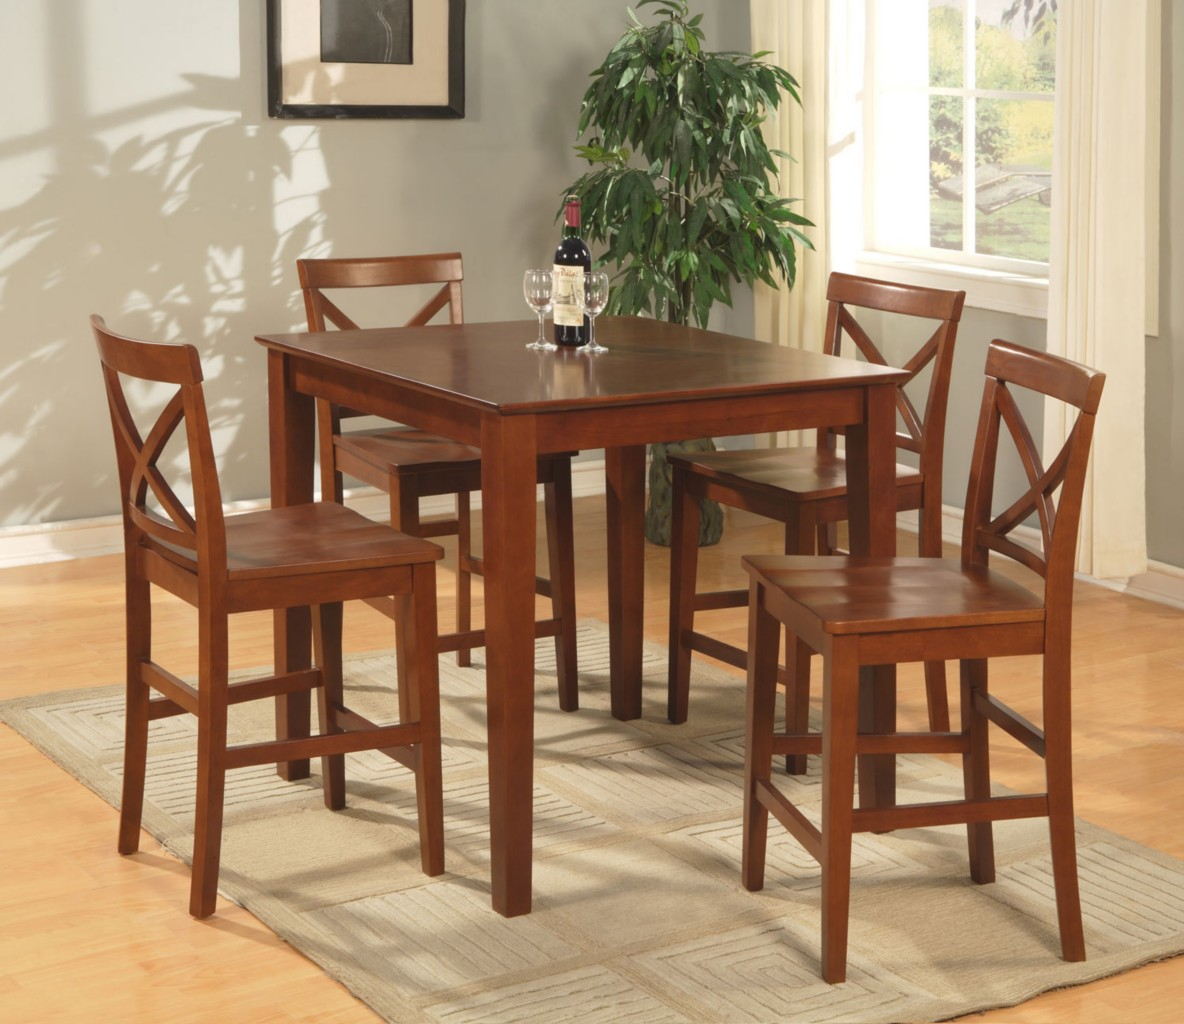 kitchen chairs bar height kitchen bar height chairs kitchen table and counter height kitchen chairs 5PC SQUARE PUB SET COUNTER HEIGHT TABLE WITH 5 WOOD SEAT STOOLS IN